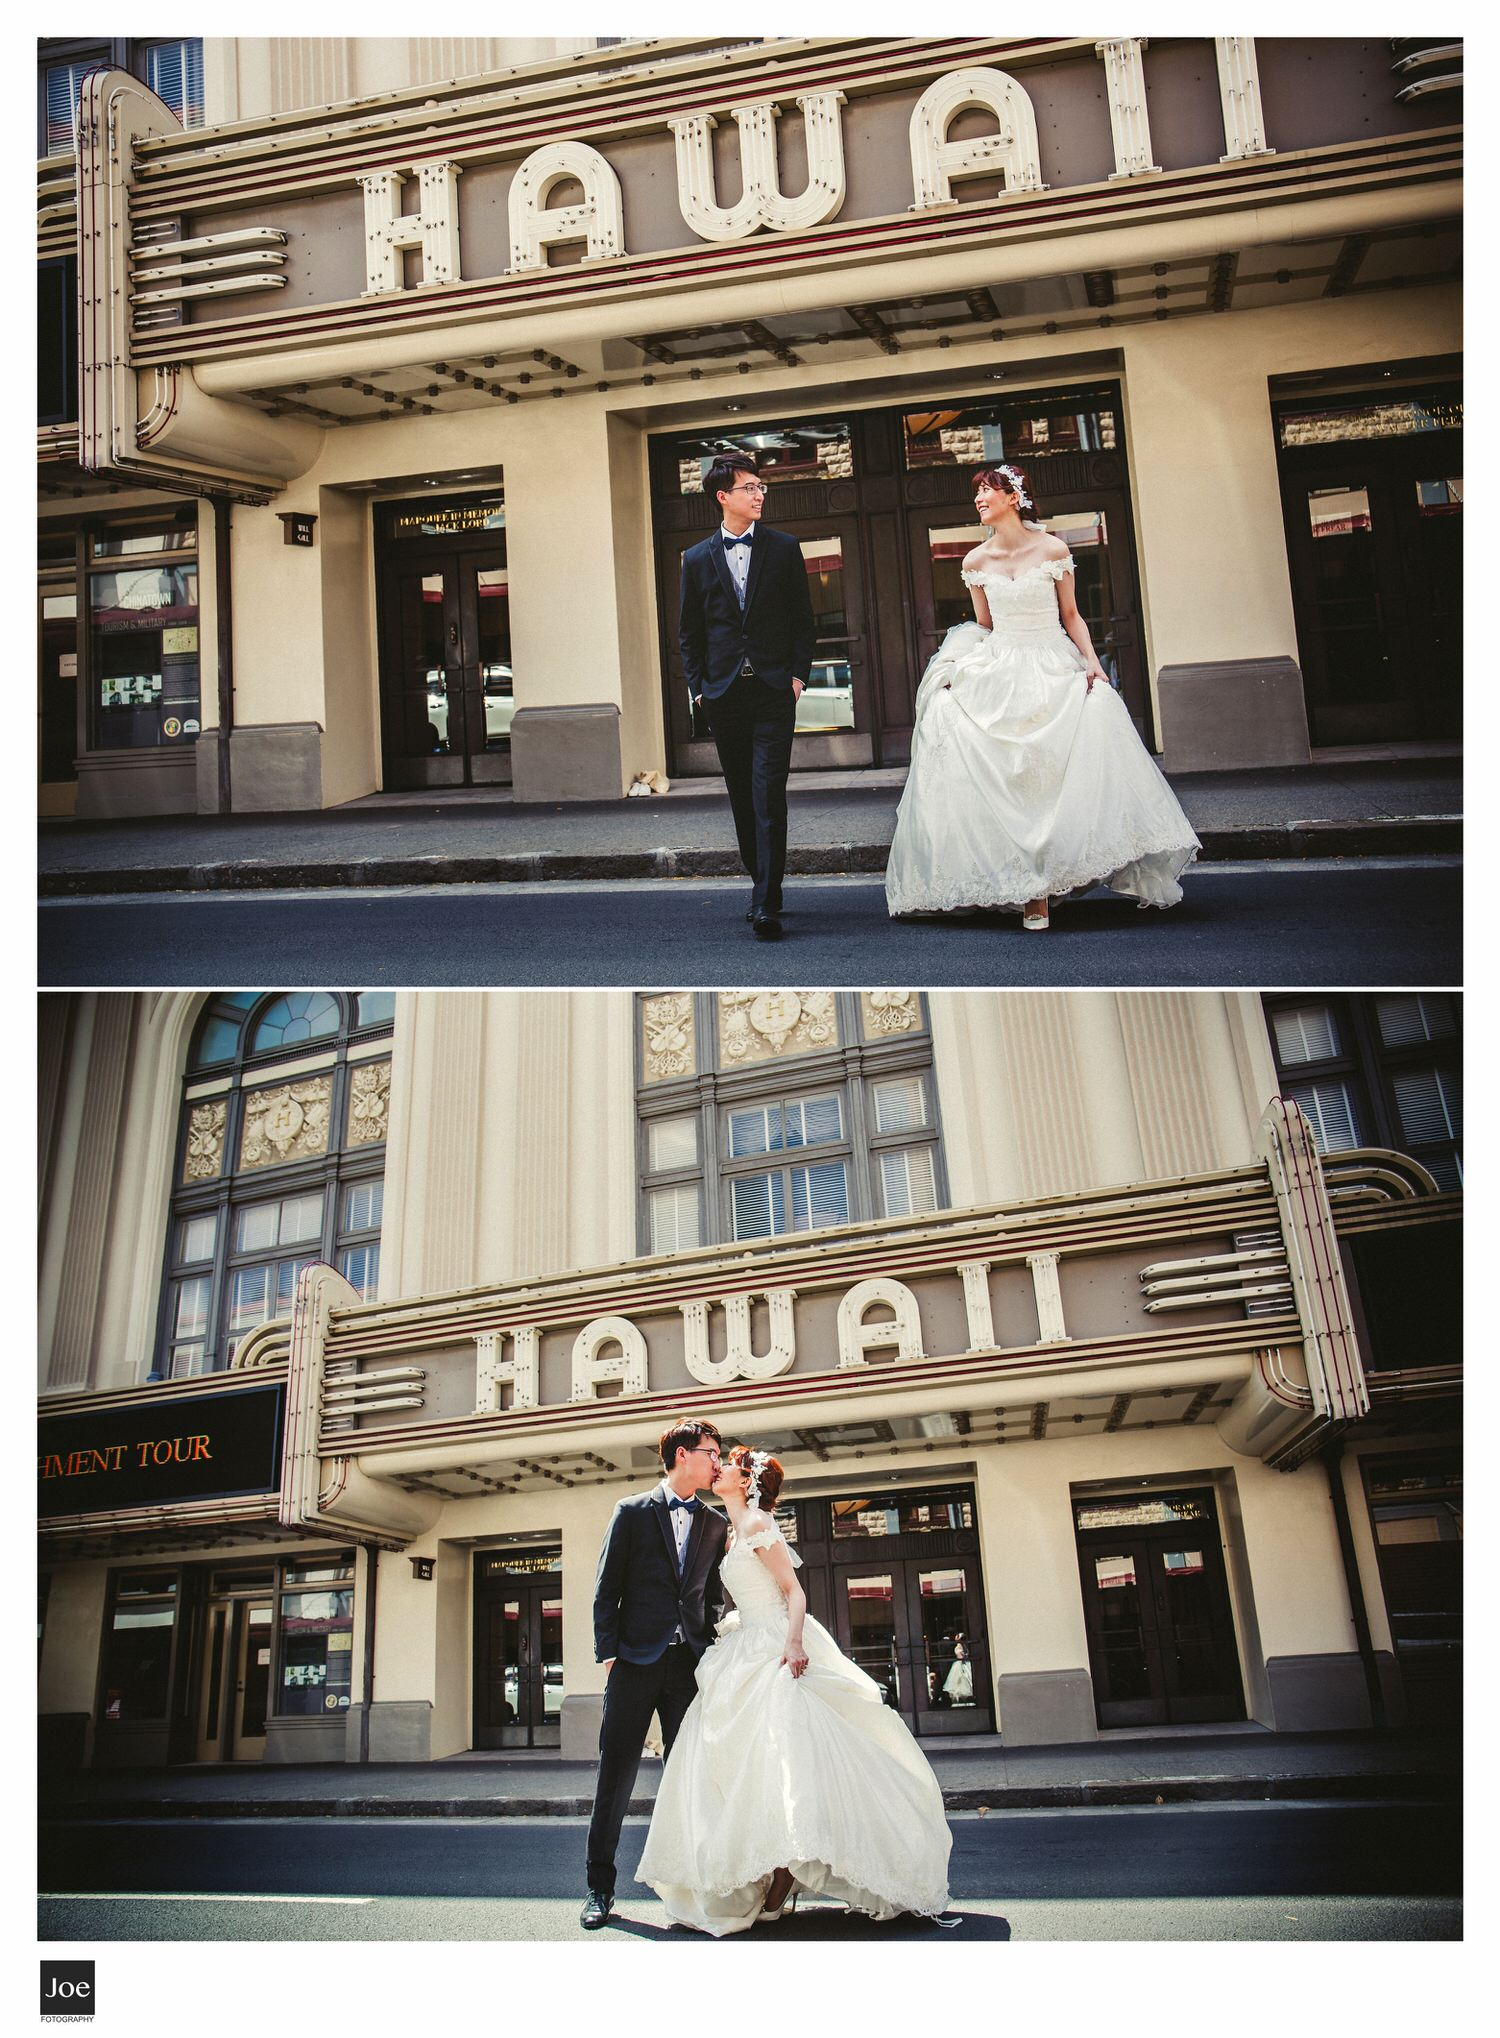 029-hawaii-theatre-pre-wedding-tiffany-tony-joe-fotography.jpg